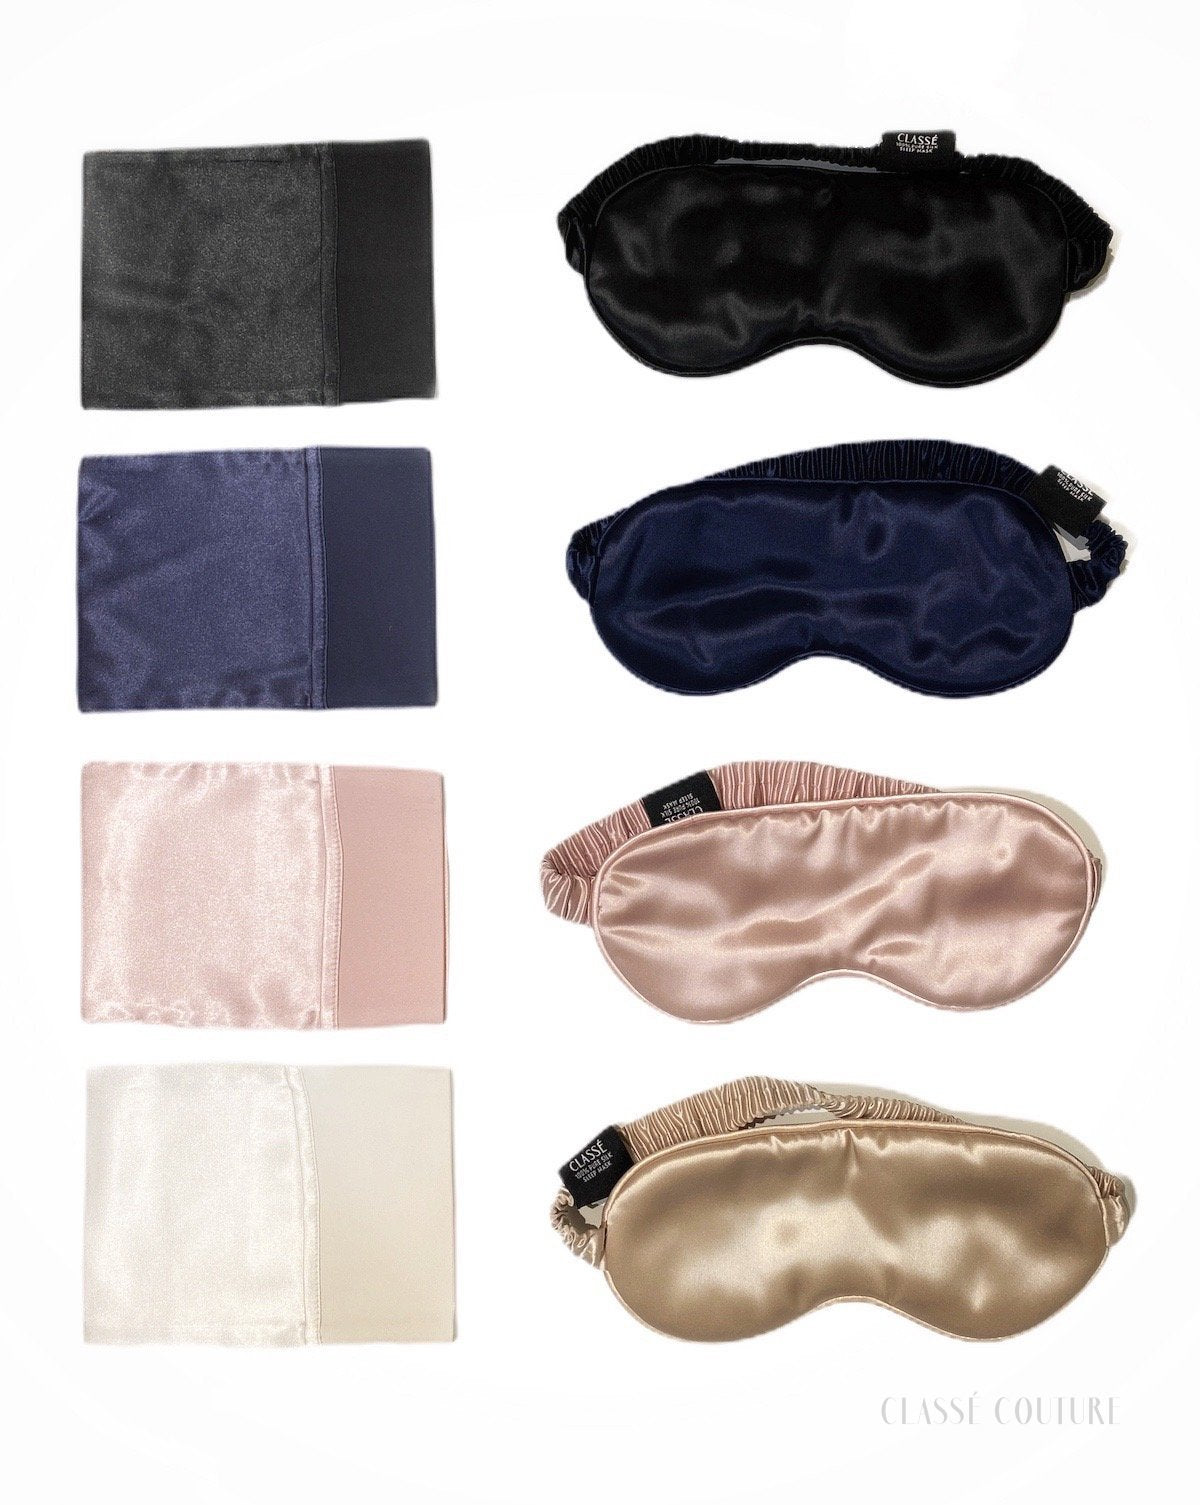 *Pre-order* 100% Mulberry Silk Luxury Sleep Mask - Peach Fleur